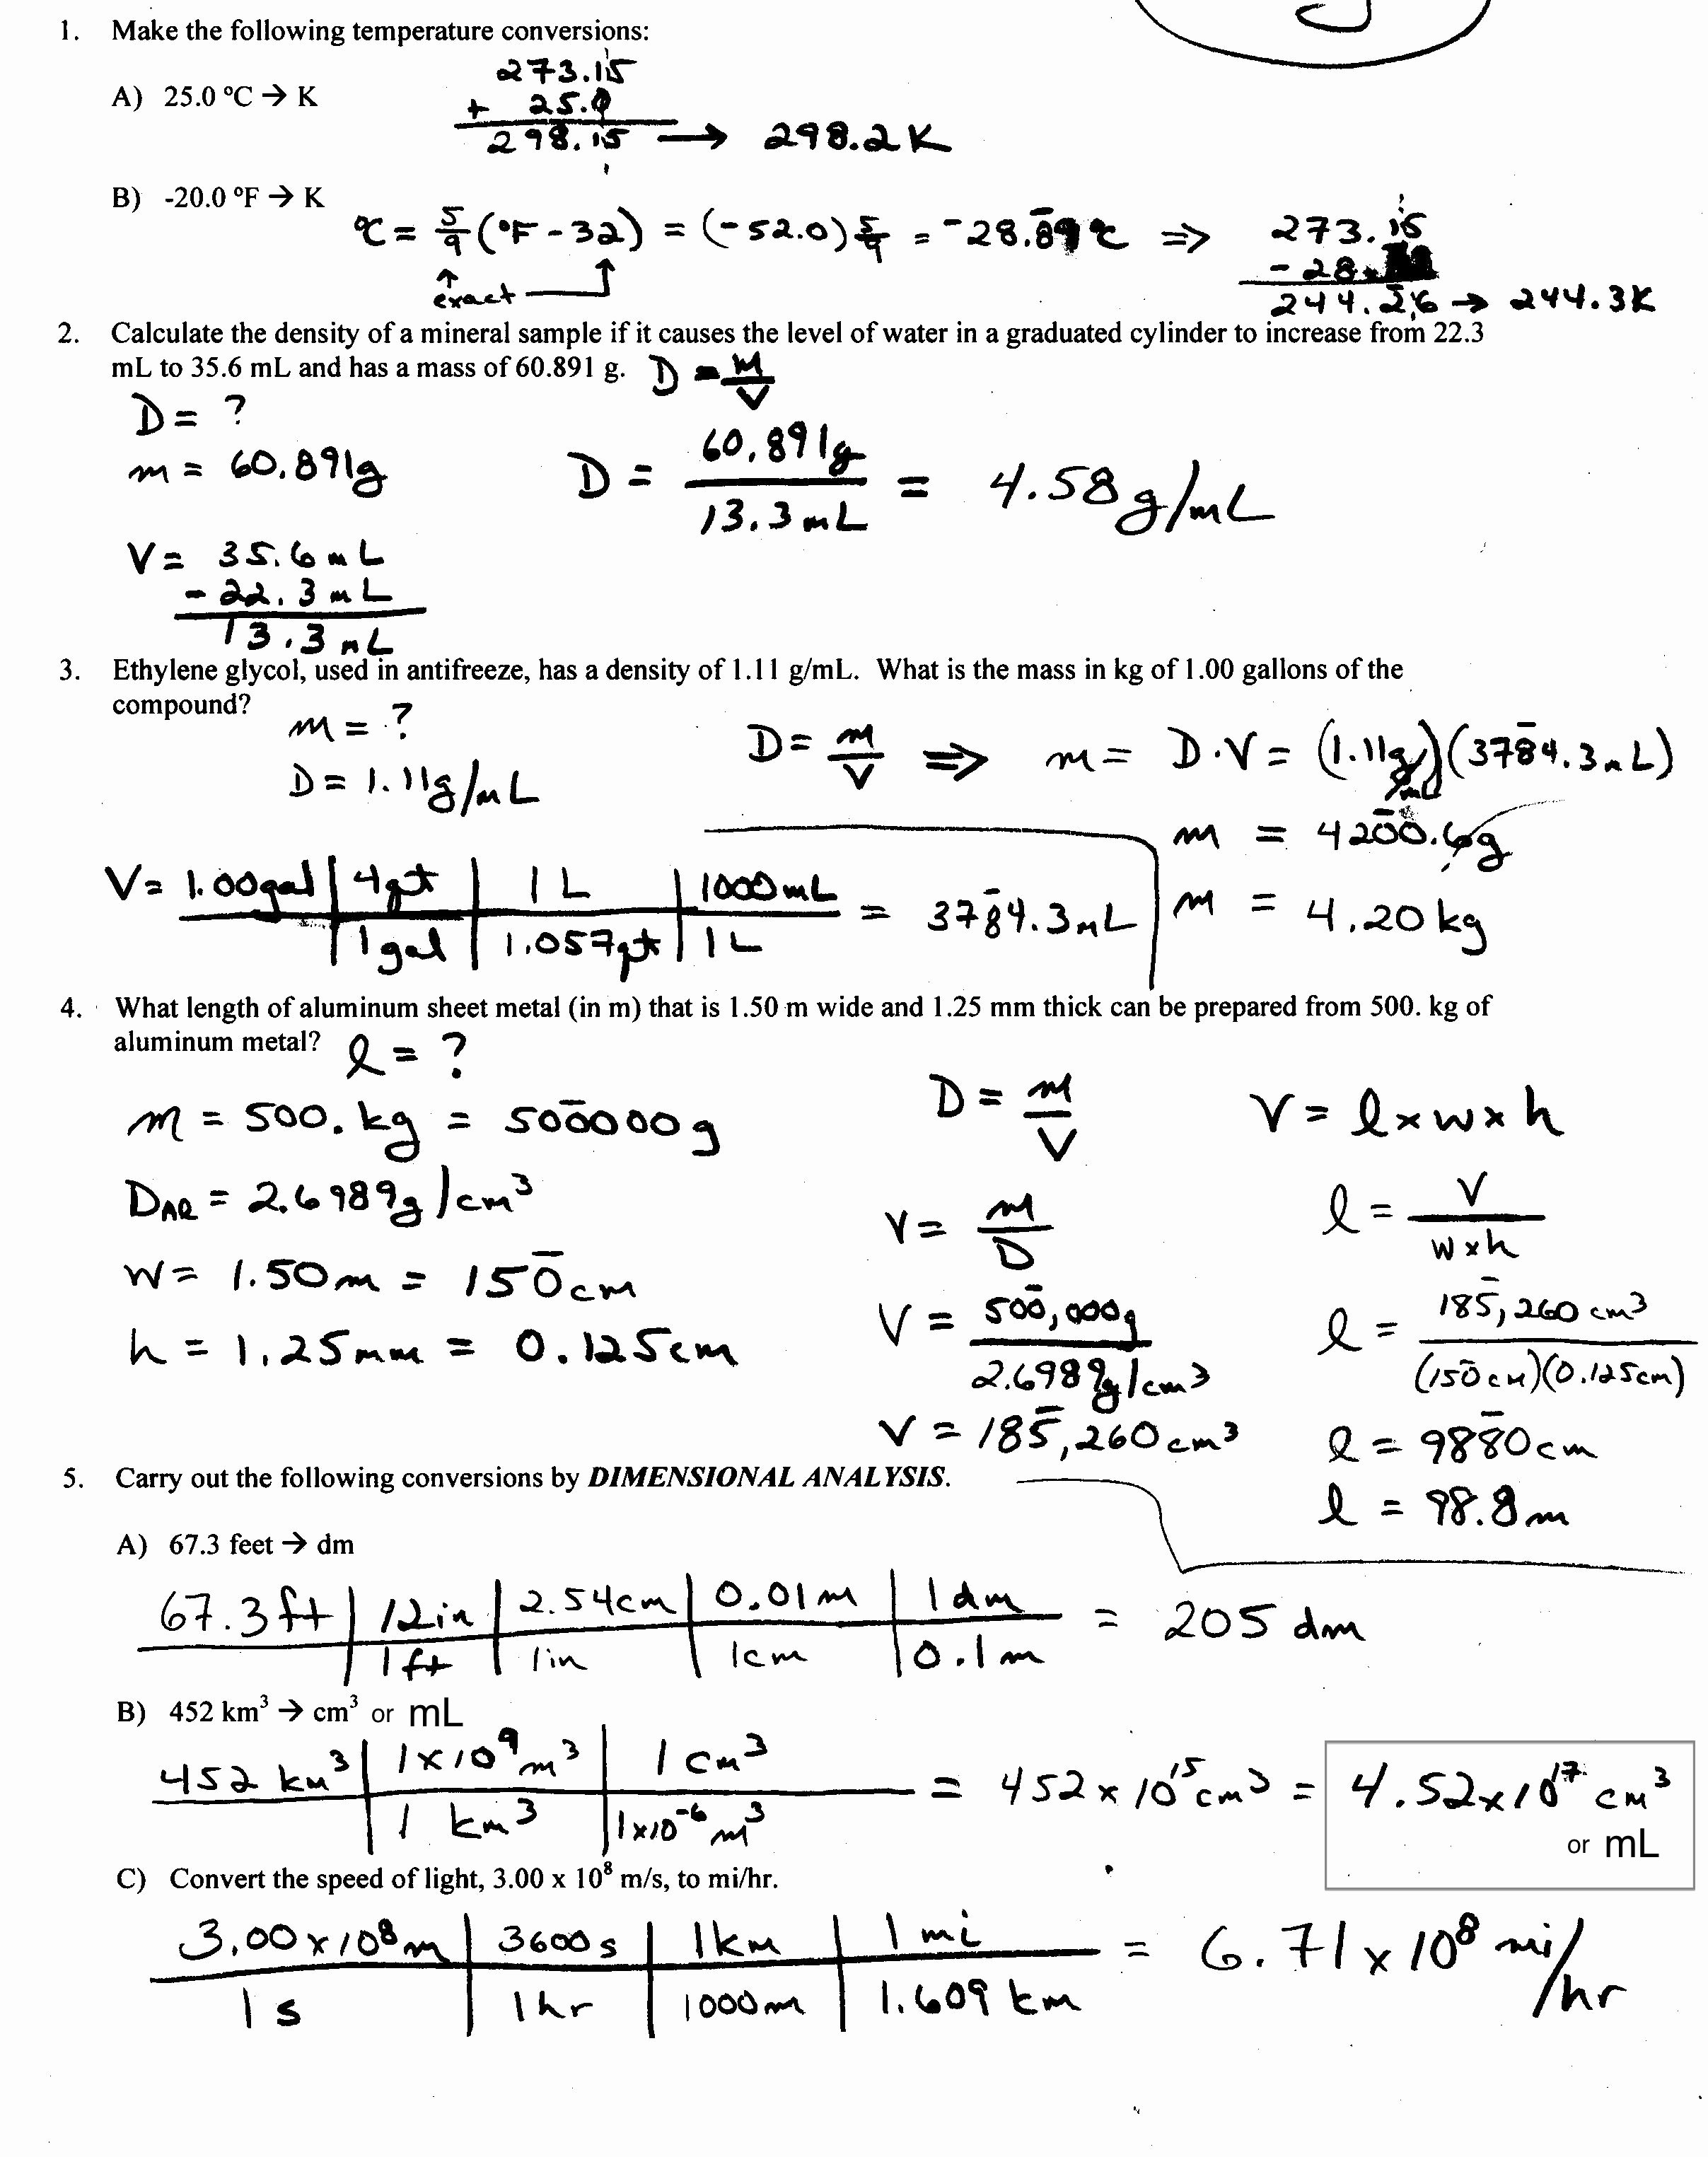 Density Calculations Worksheet Answer Key New Density Worksheet with Answers Calculate Density